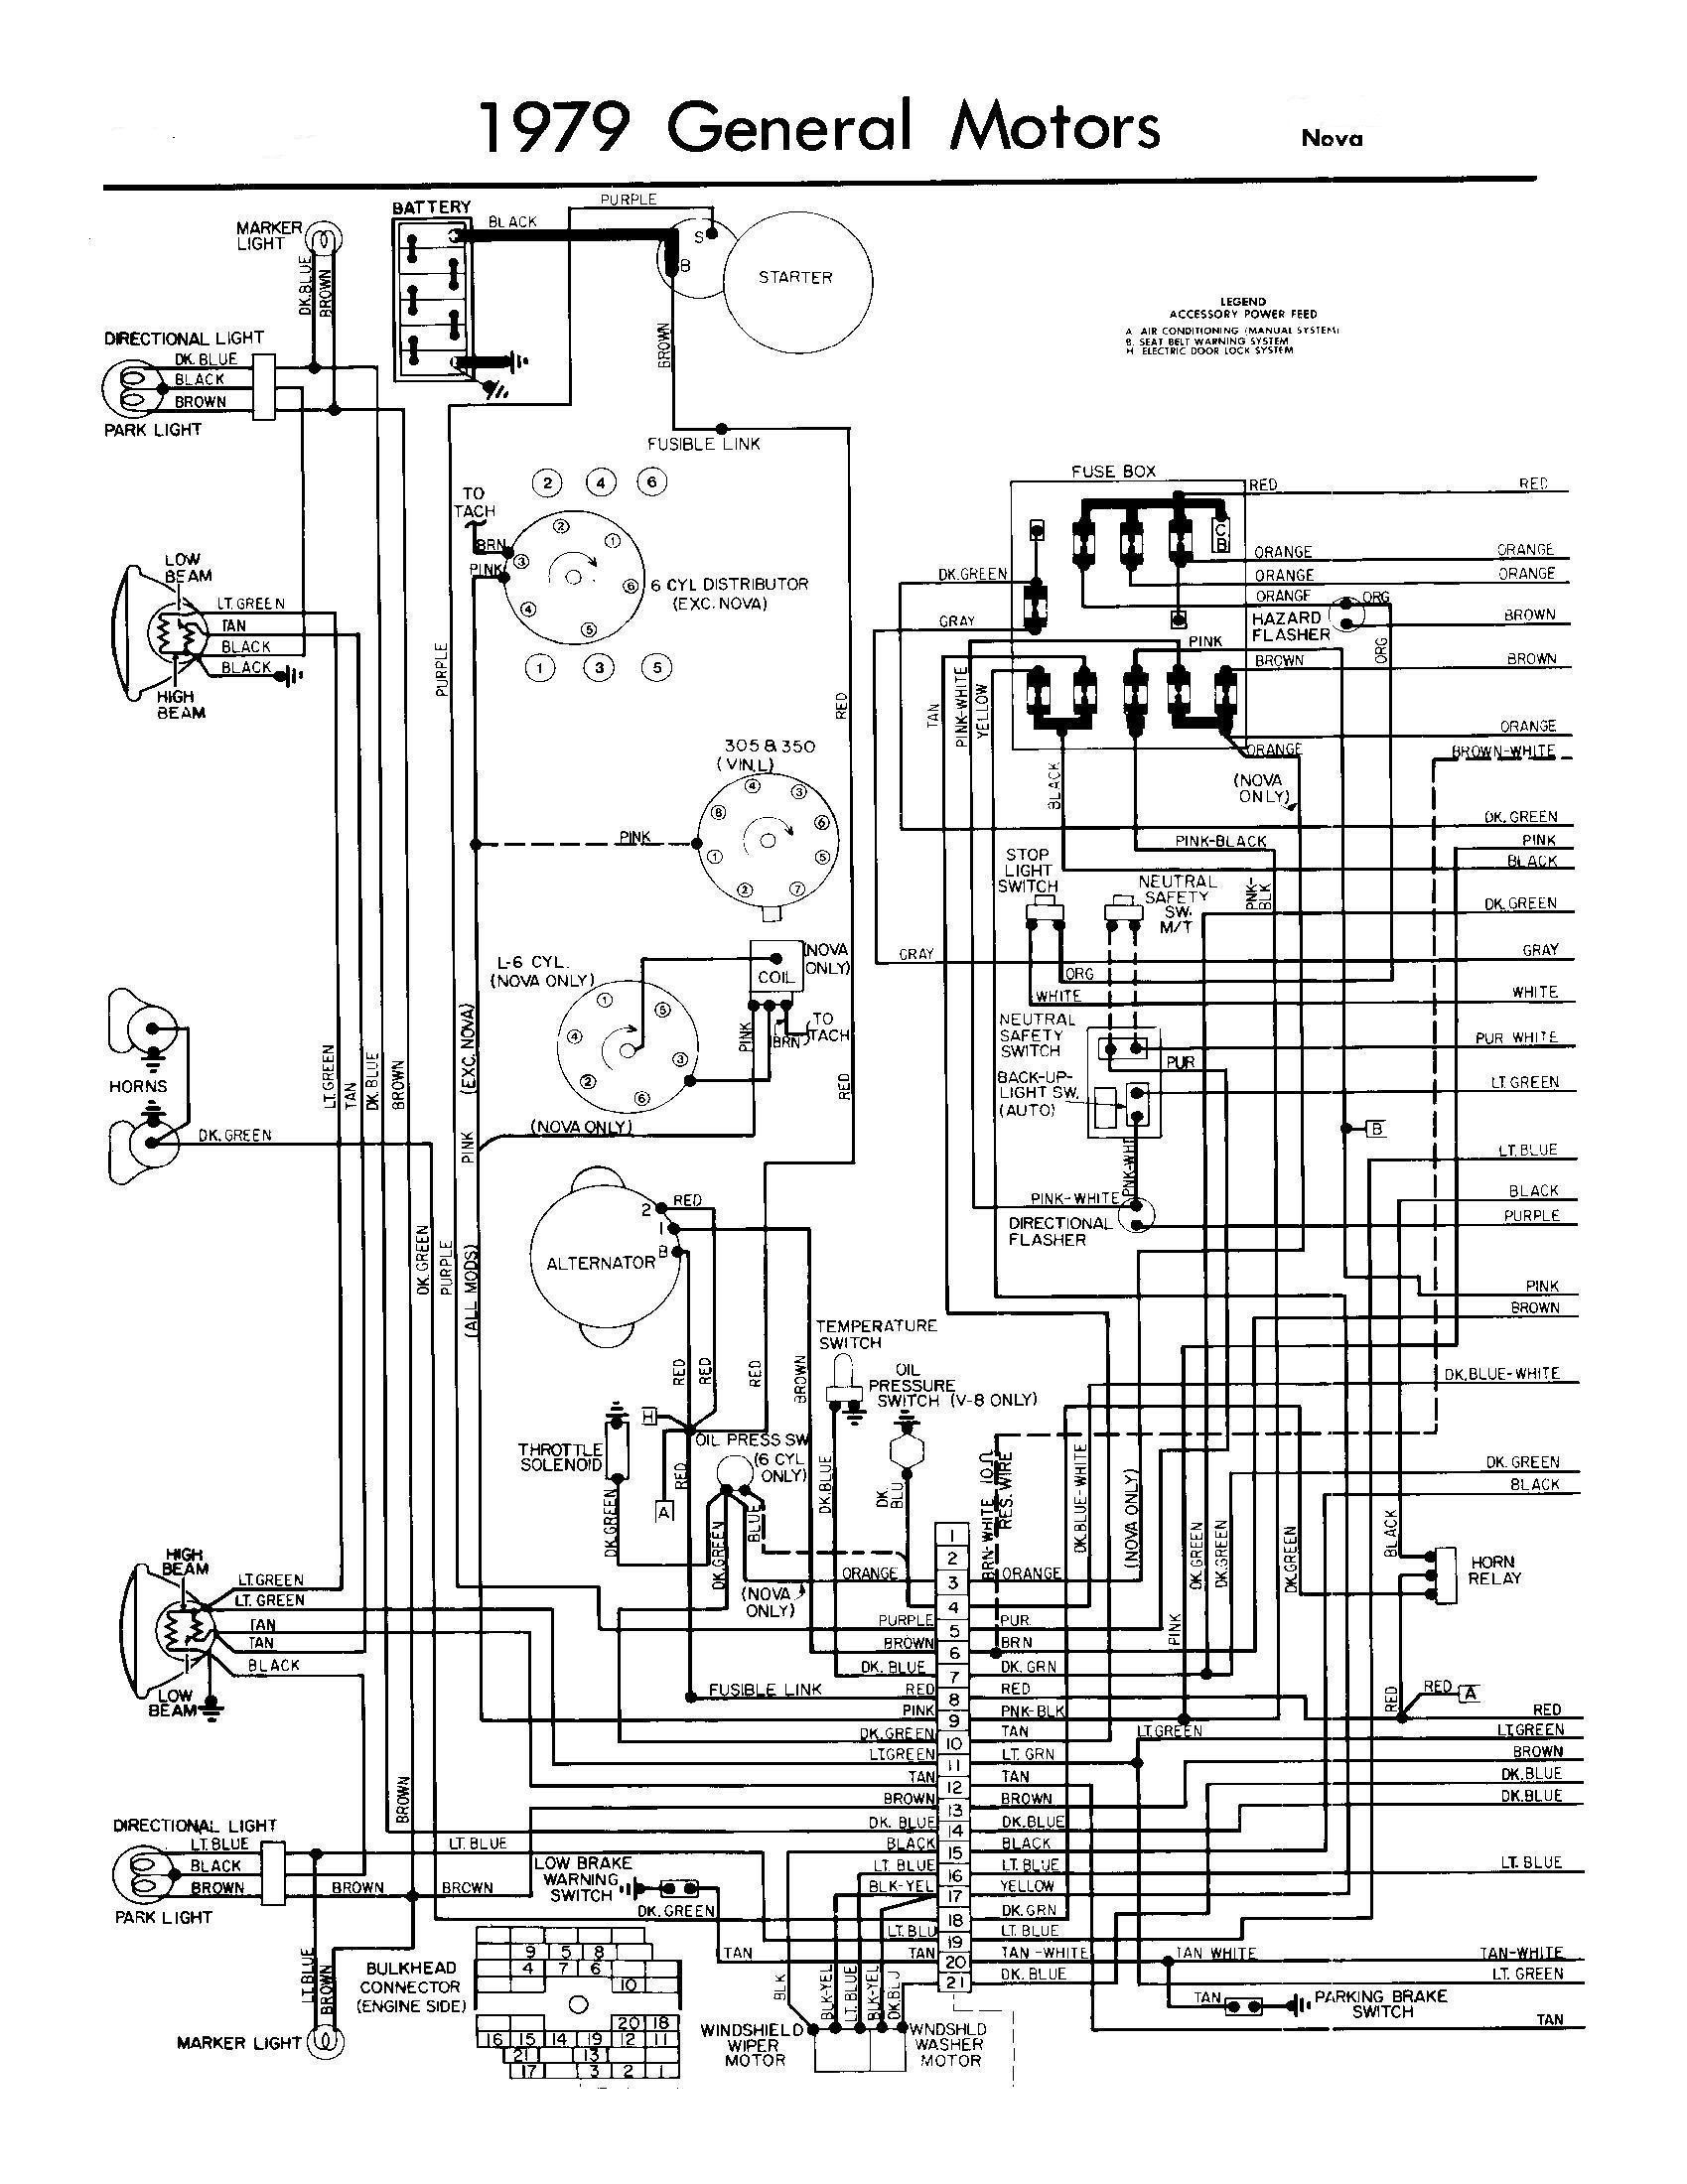 1982 mustang wiring diagram auto wiring diagram preview 1982 Mustang Fuel Pump